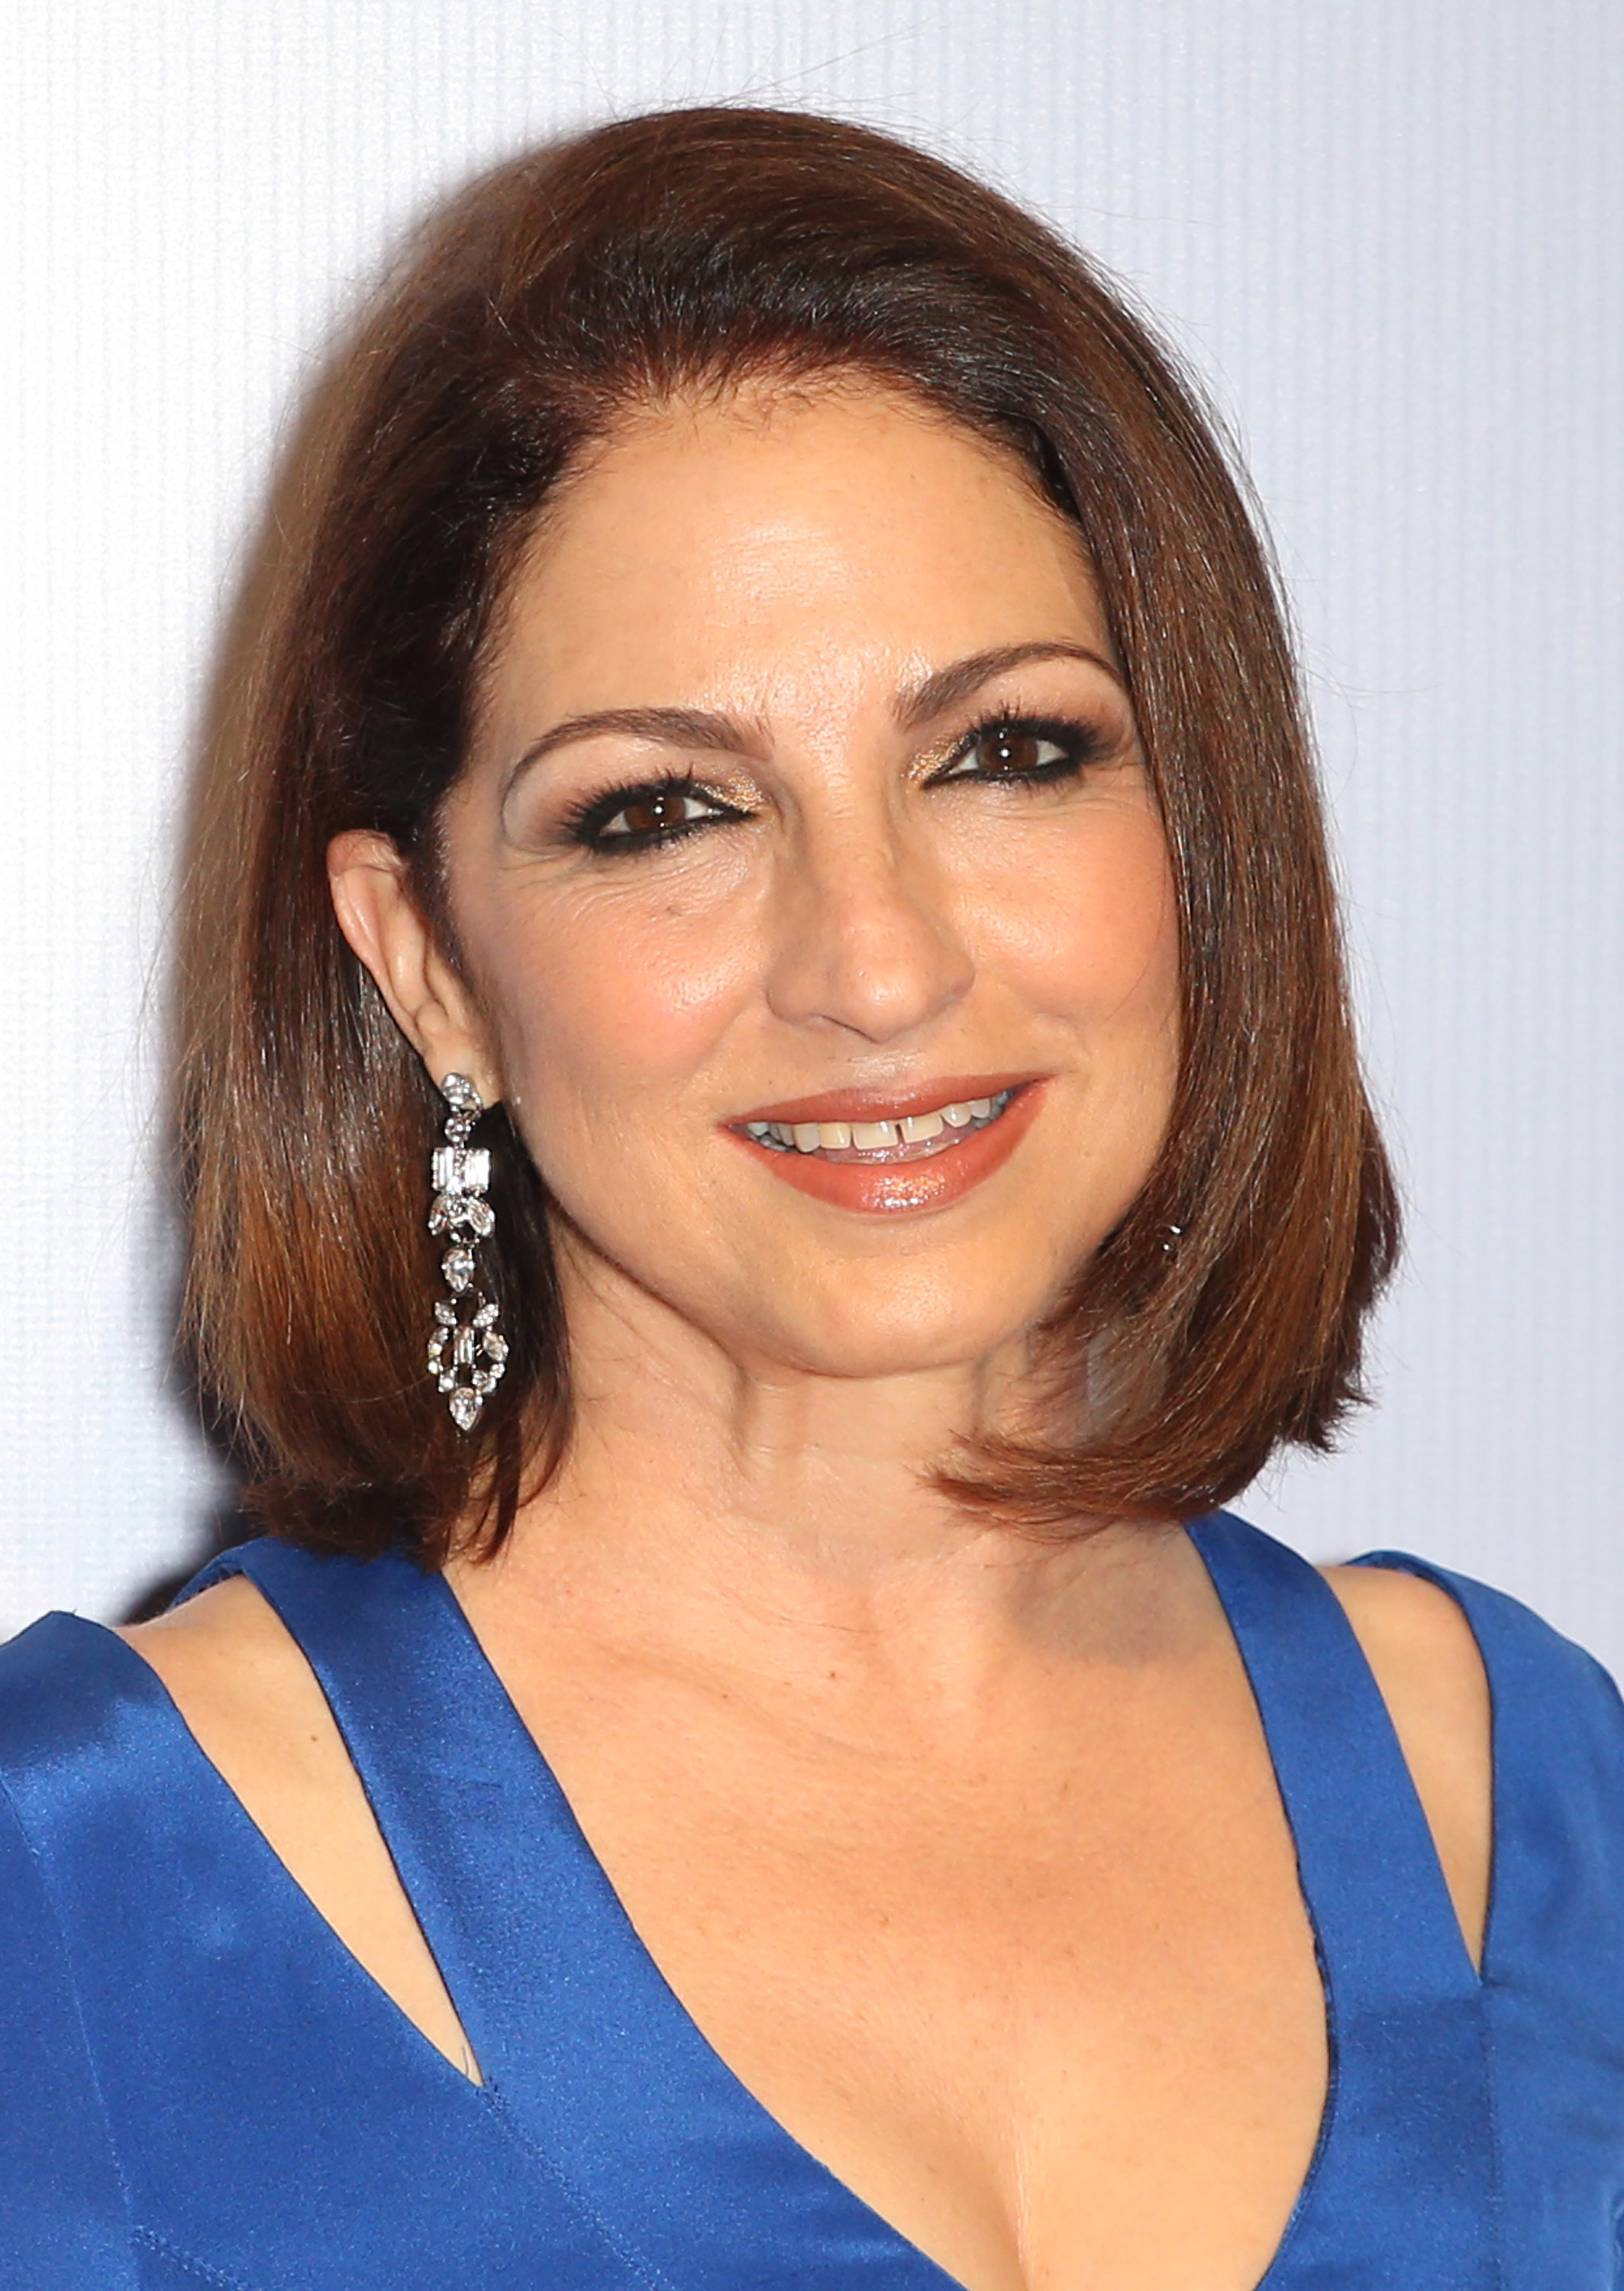 Honoree Gloria Estefan attends the 18th annual Keep Memory Alive 'Power of Love Gala' benefit for the Cleveland Clinic Lou Ruvo Center for Brain Health honoring Gloria Estefan and Emilio Estefan Jr. at the MGM Grand Garden Arena on April 26, 2014 in Las Vegas, Nevada.